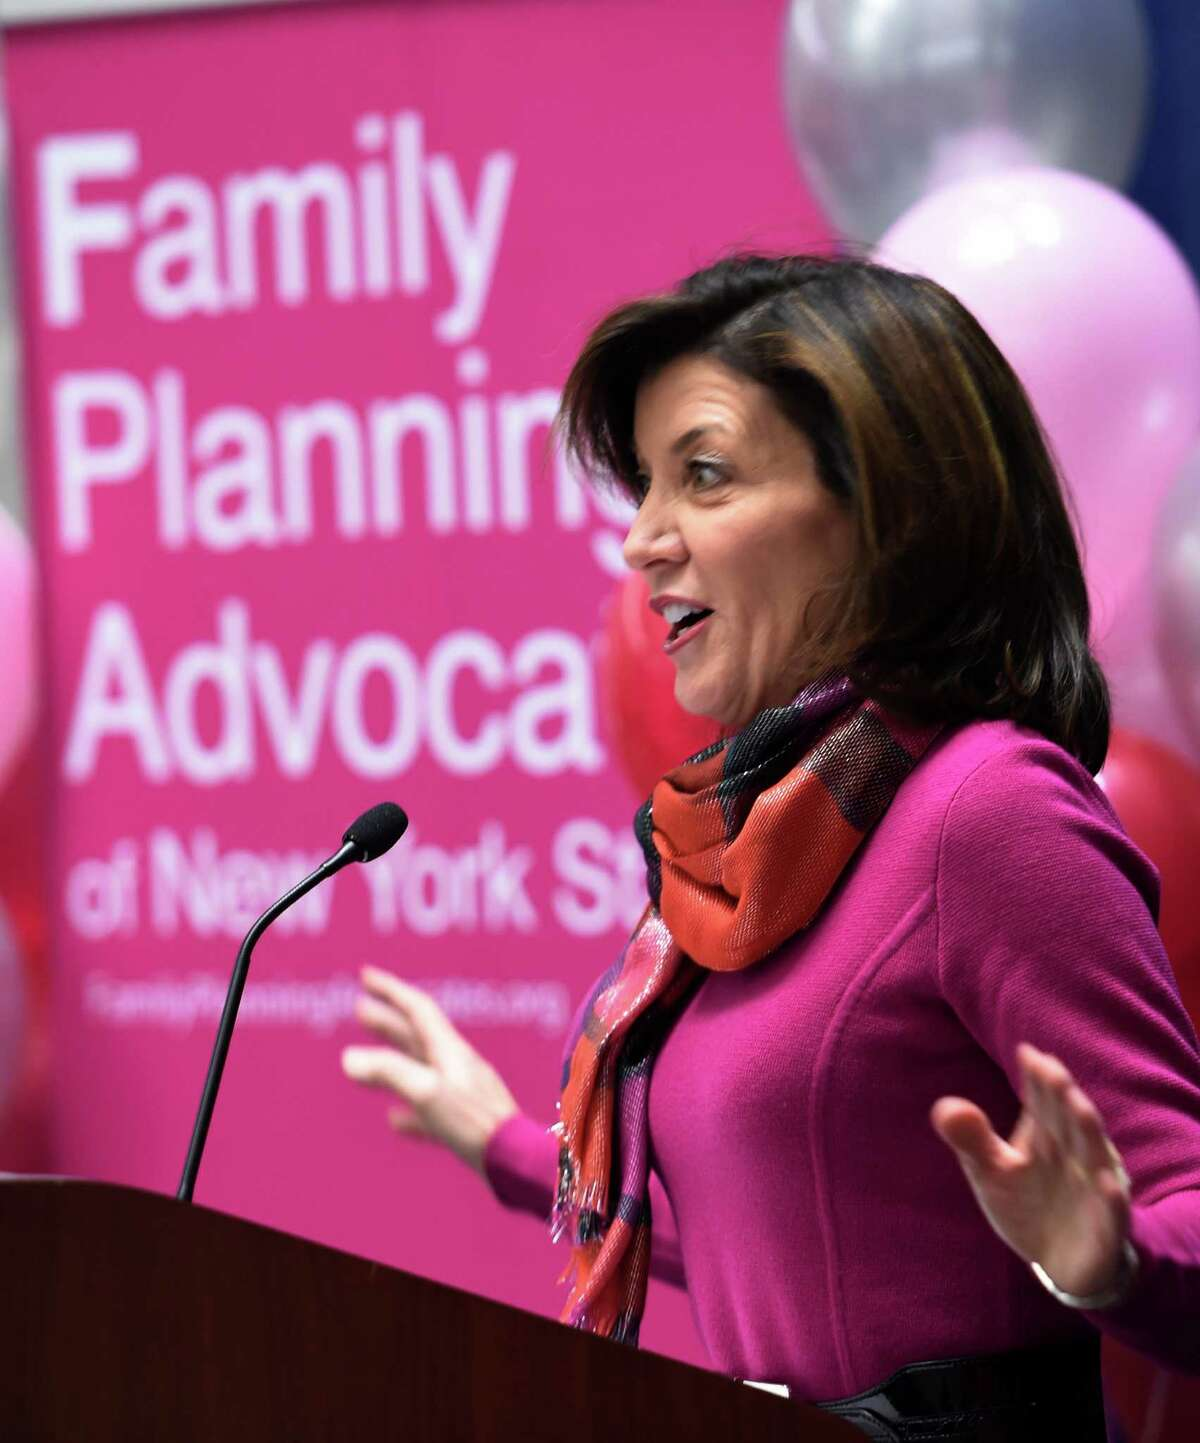 Lt. Governor Kathy Hochul addresses the Family Planning Advocates of New York State Jan. 25, 2016 in Albany, N.Y. (Skip Dickstein/Times Union)